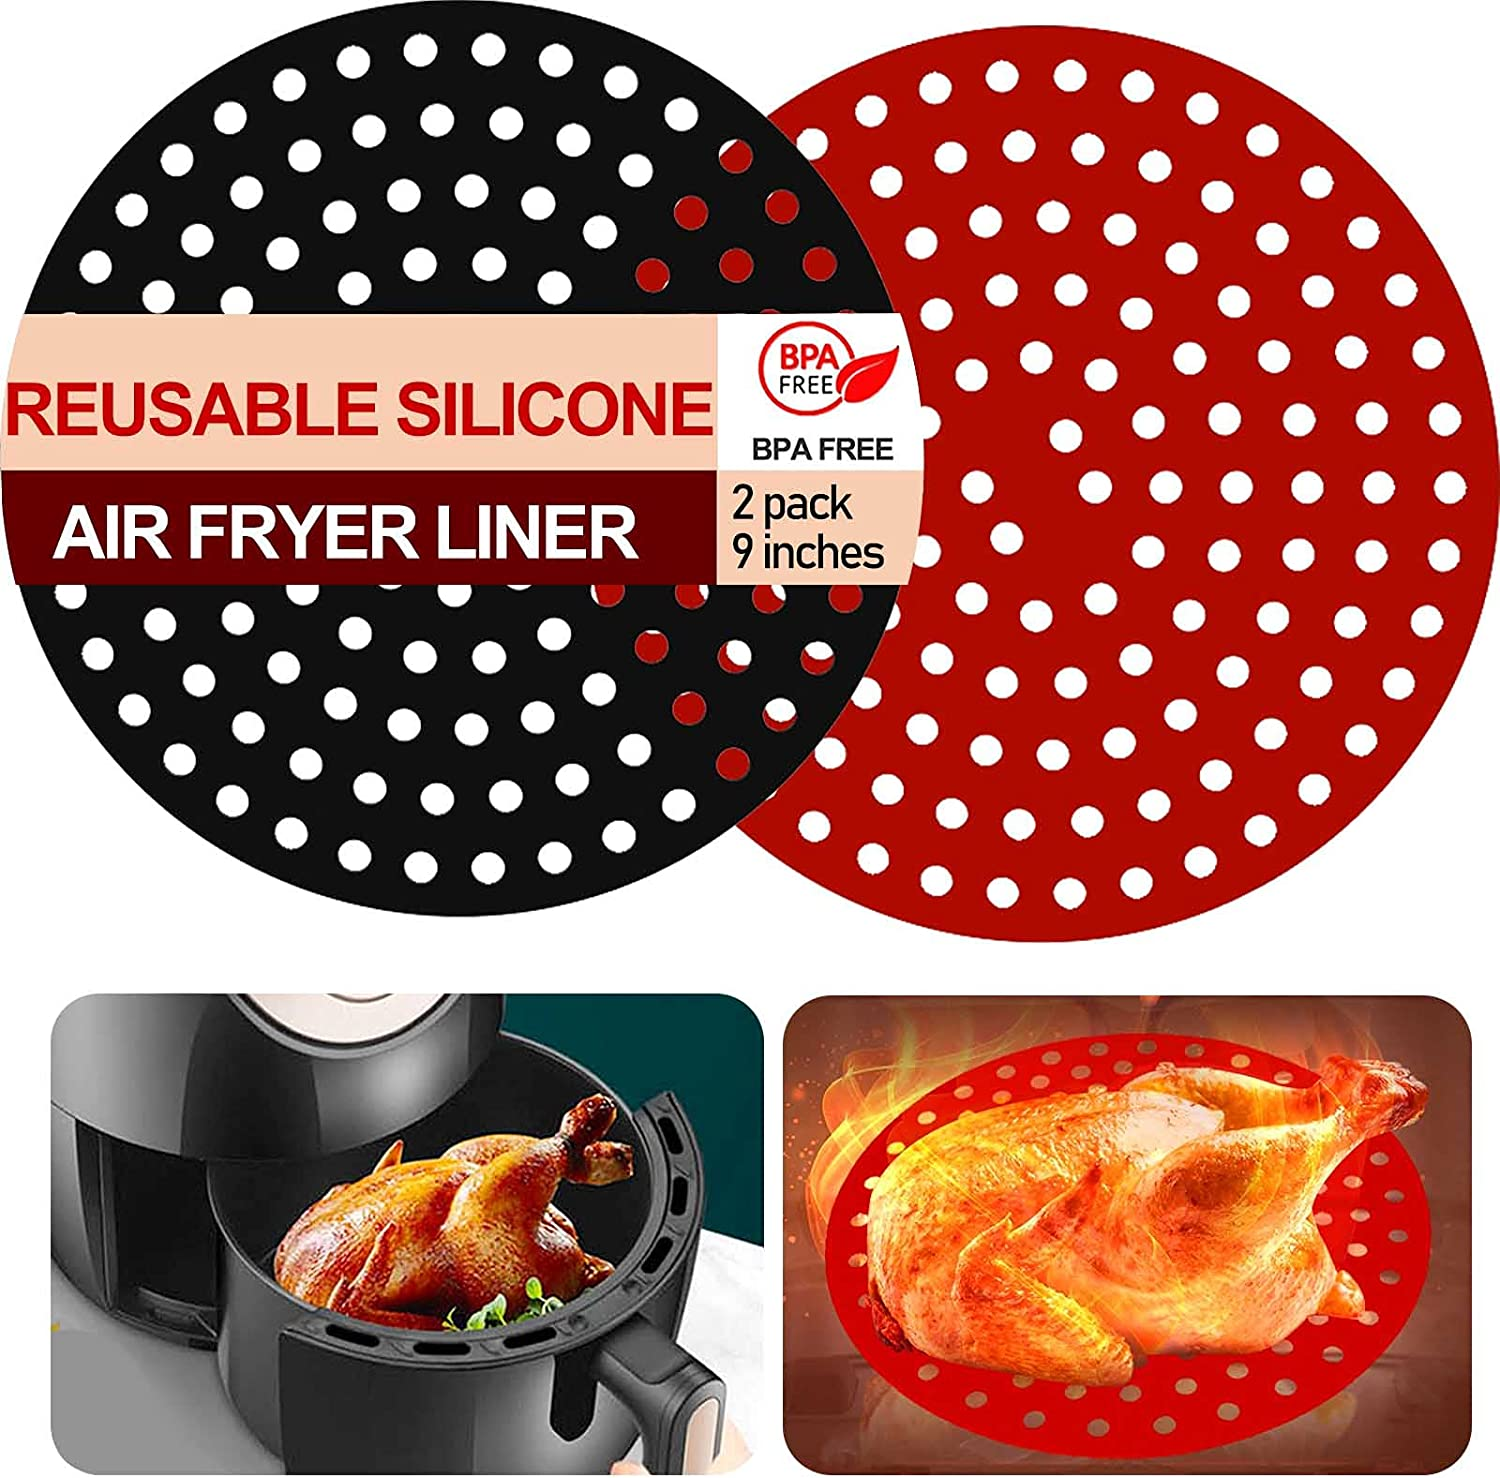 Connfiton Reusable Air Fryer Liners silicone,9 inch Round,Non-Stick Silicone Air Fryer Basket Mats,Air Fryer Accessories For Ninja,Gourmia,Power XL,GoWise,Chefman,NuWave,and More,BPA Free -2 Pcs